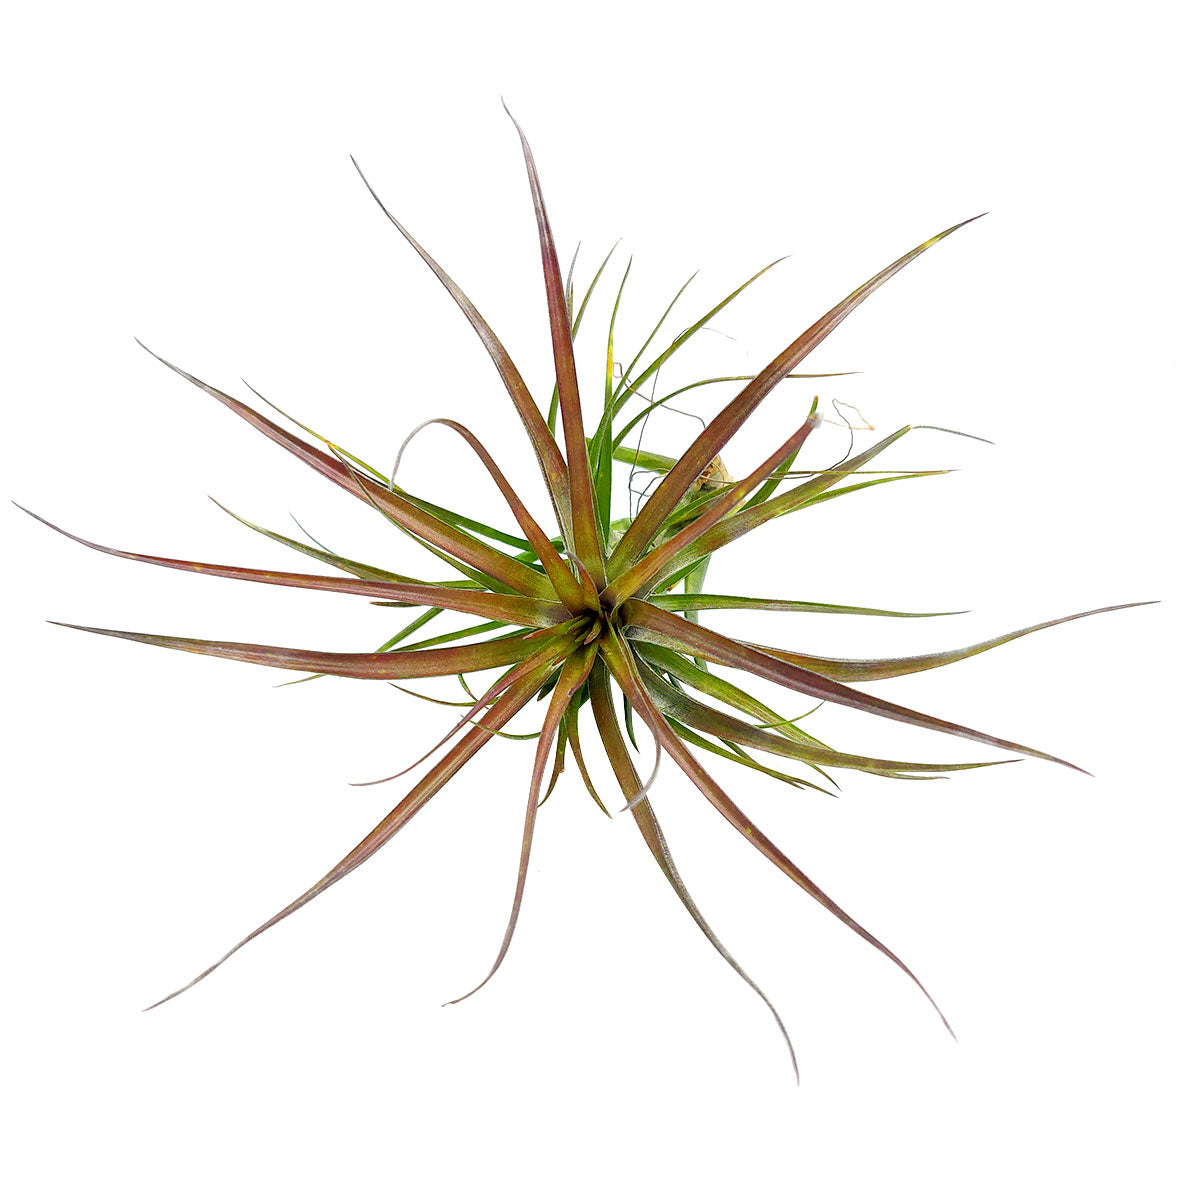 Tillandsia Tenuifolia Amethyst air plant for sale, unique gift decor ideas, air plant subscription delivery monthly, Tillandsia Tenuifolia Amethyst with air plant care guide